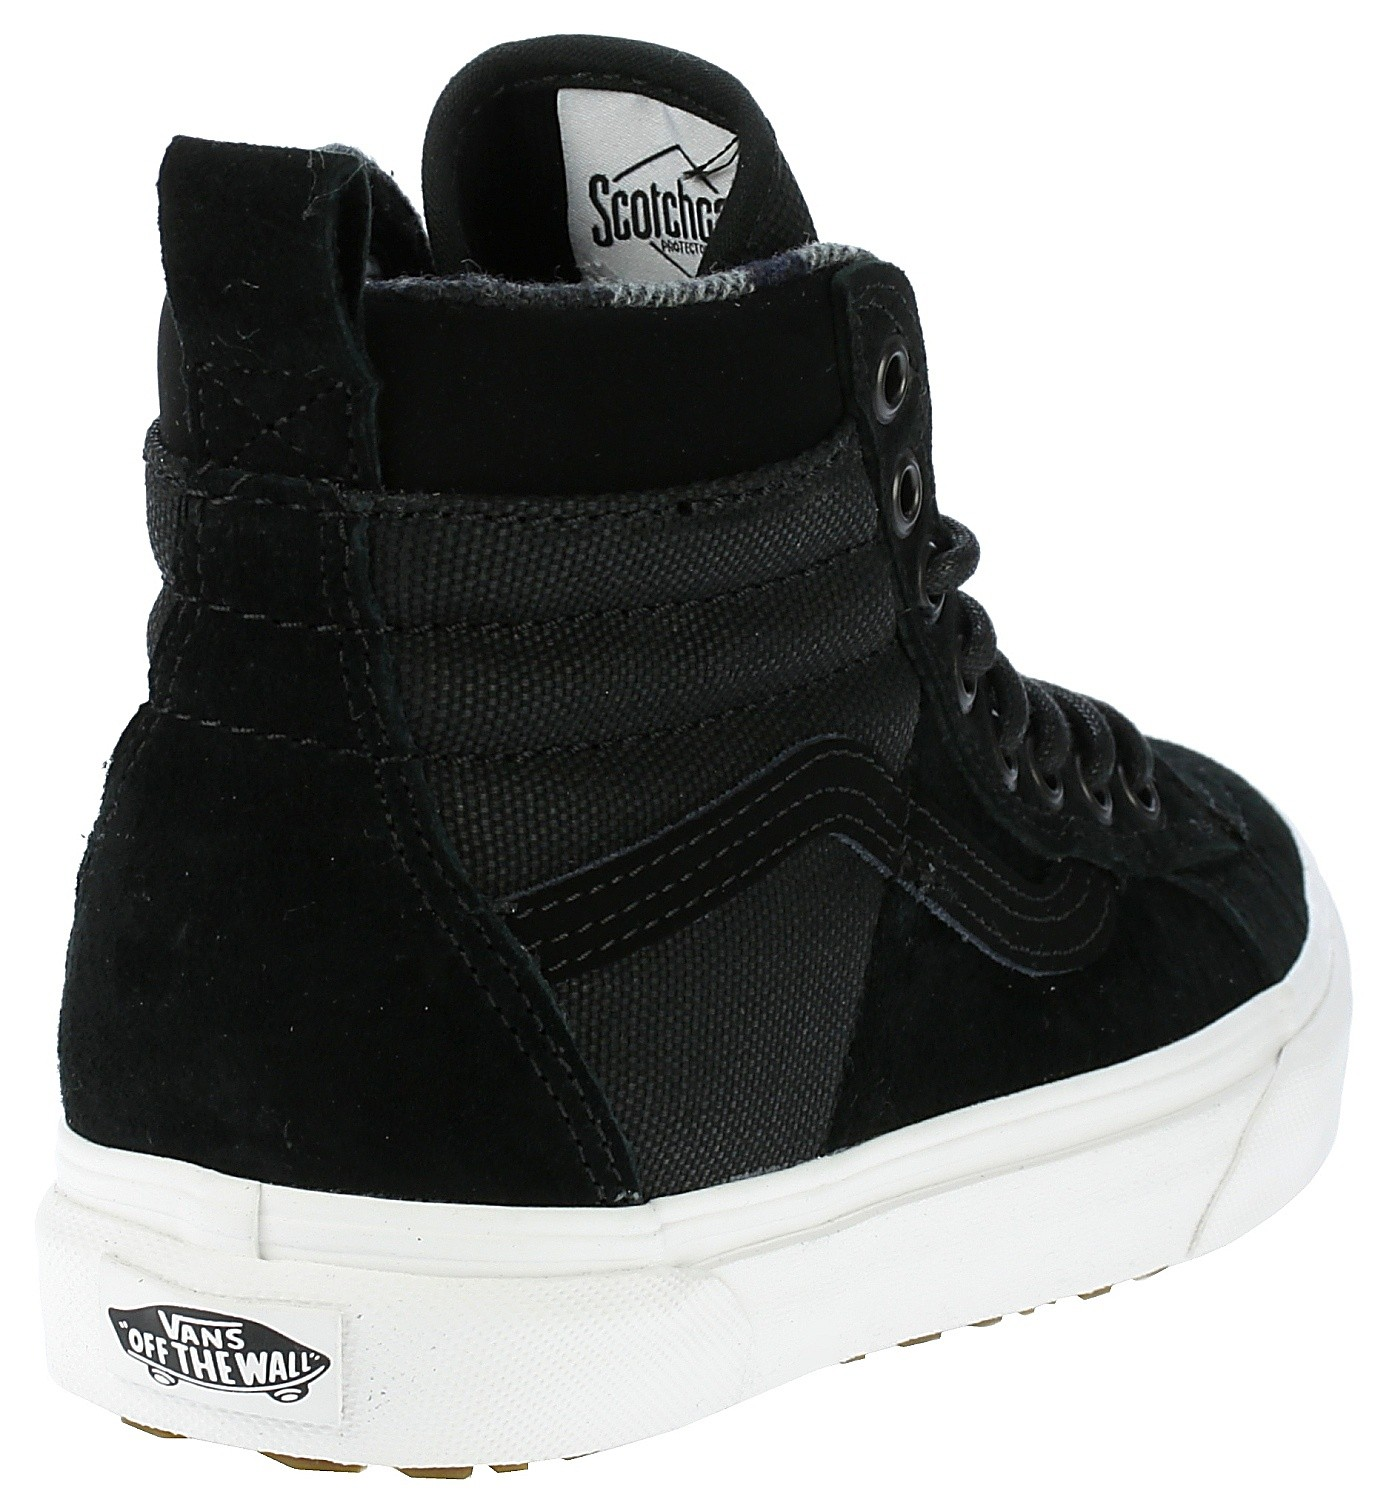 shoes Vans Sk8,Hi 46 MTE DX , MTE/Black/Flannel , snowboard